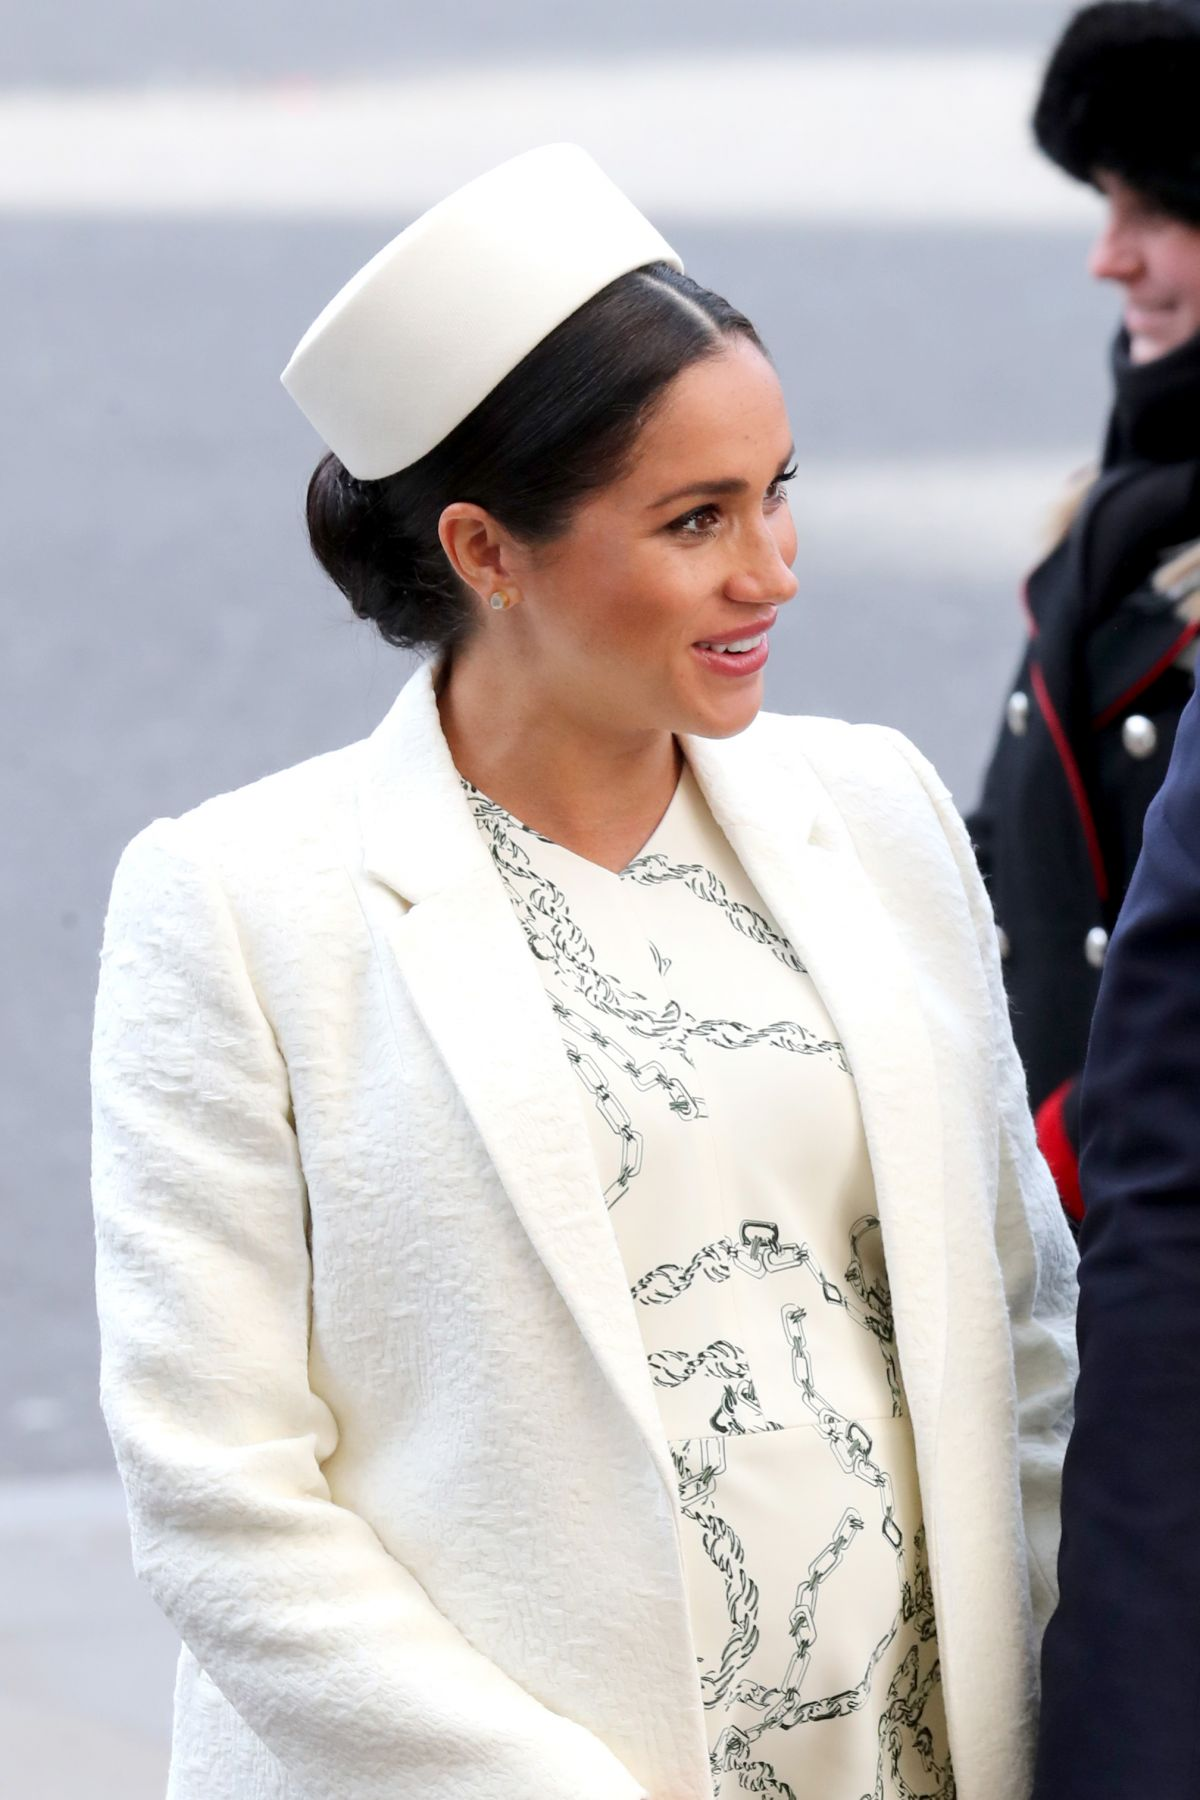 Pregnant MEGHAN MARKLE At Westminster Abbey For